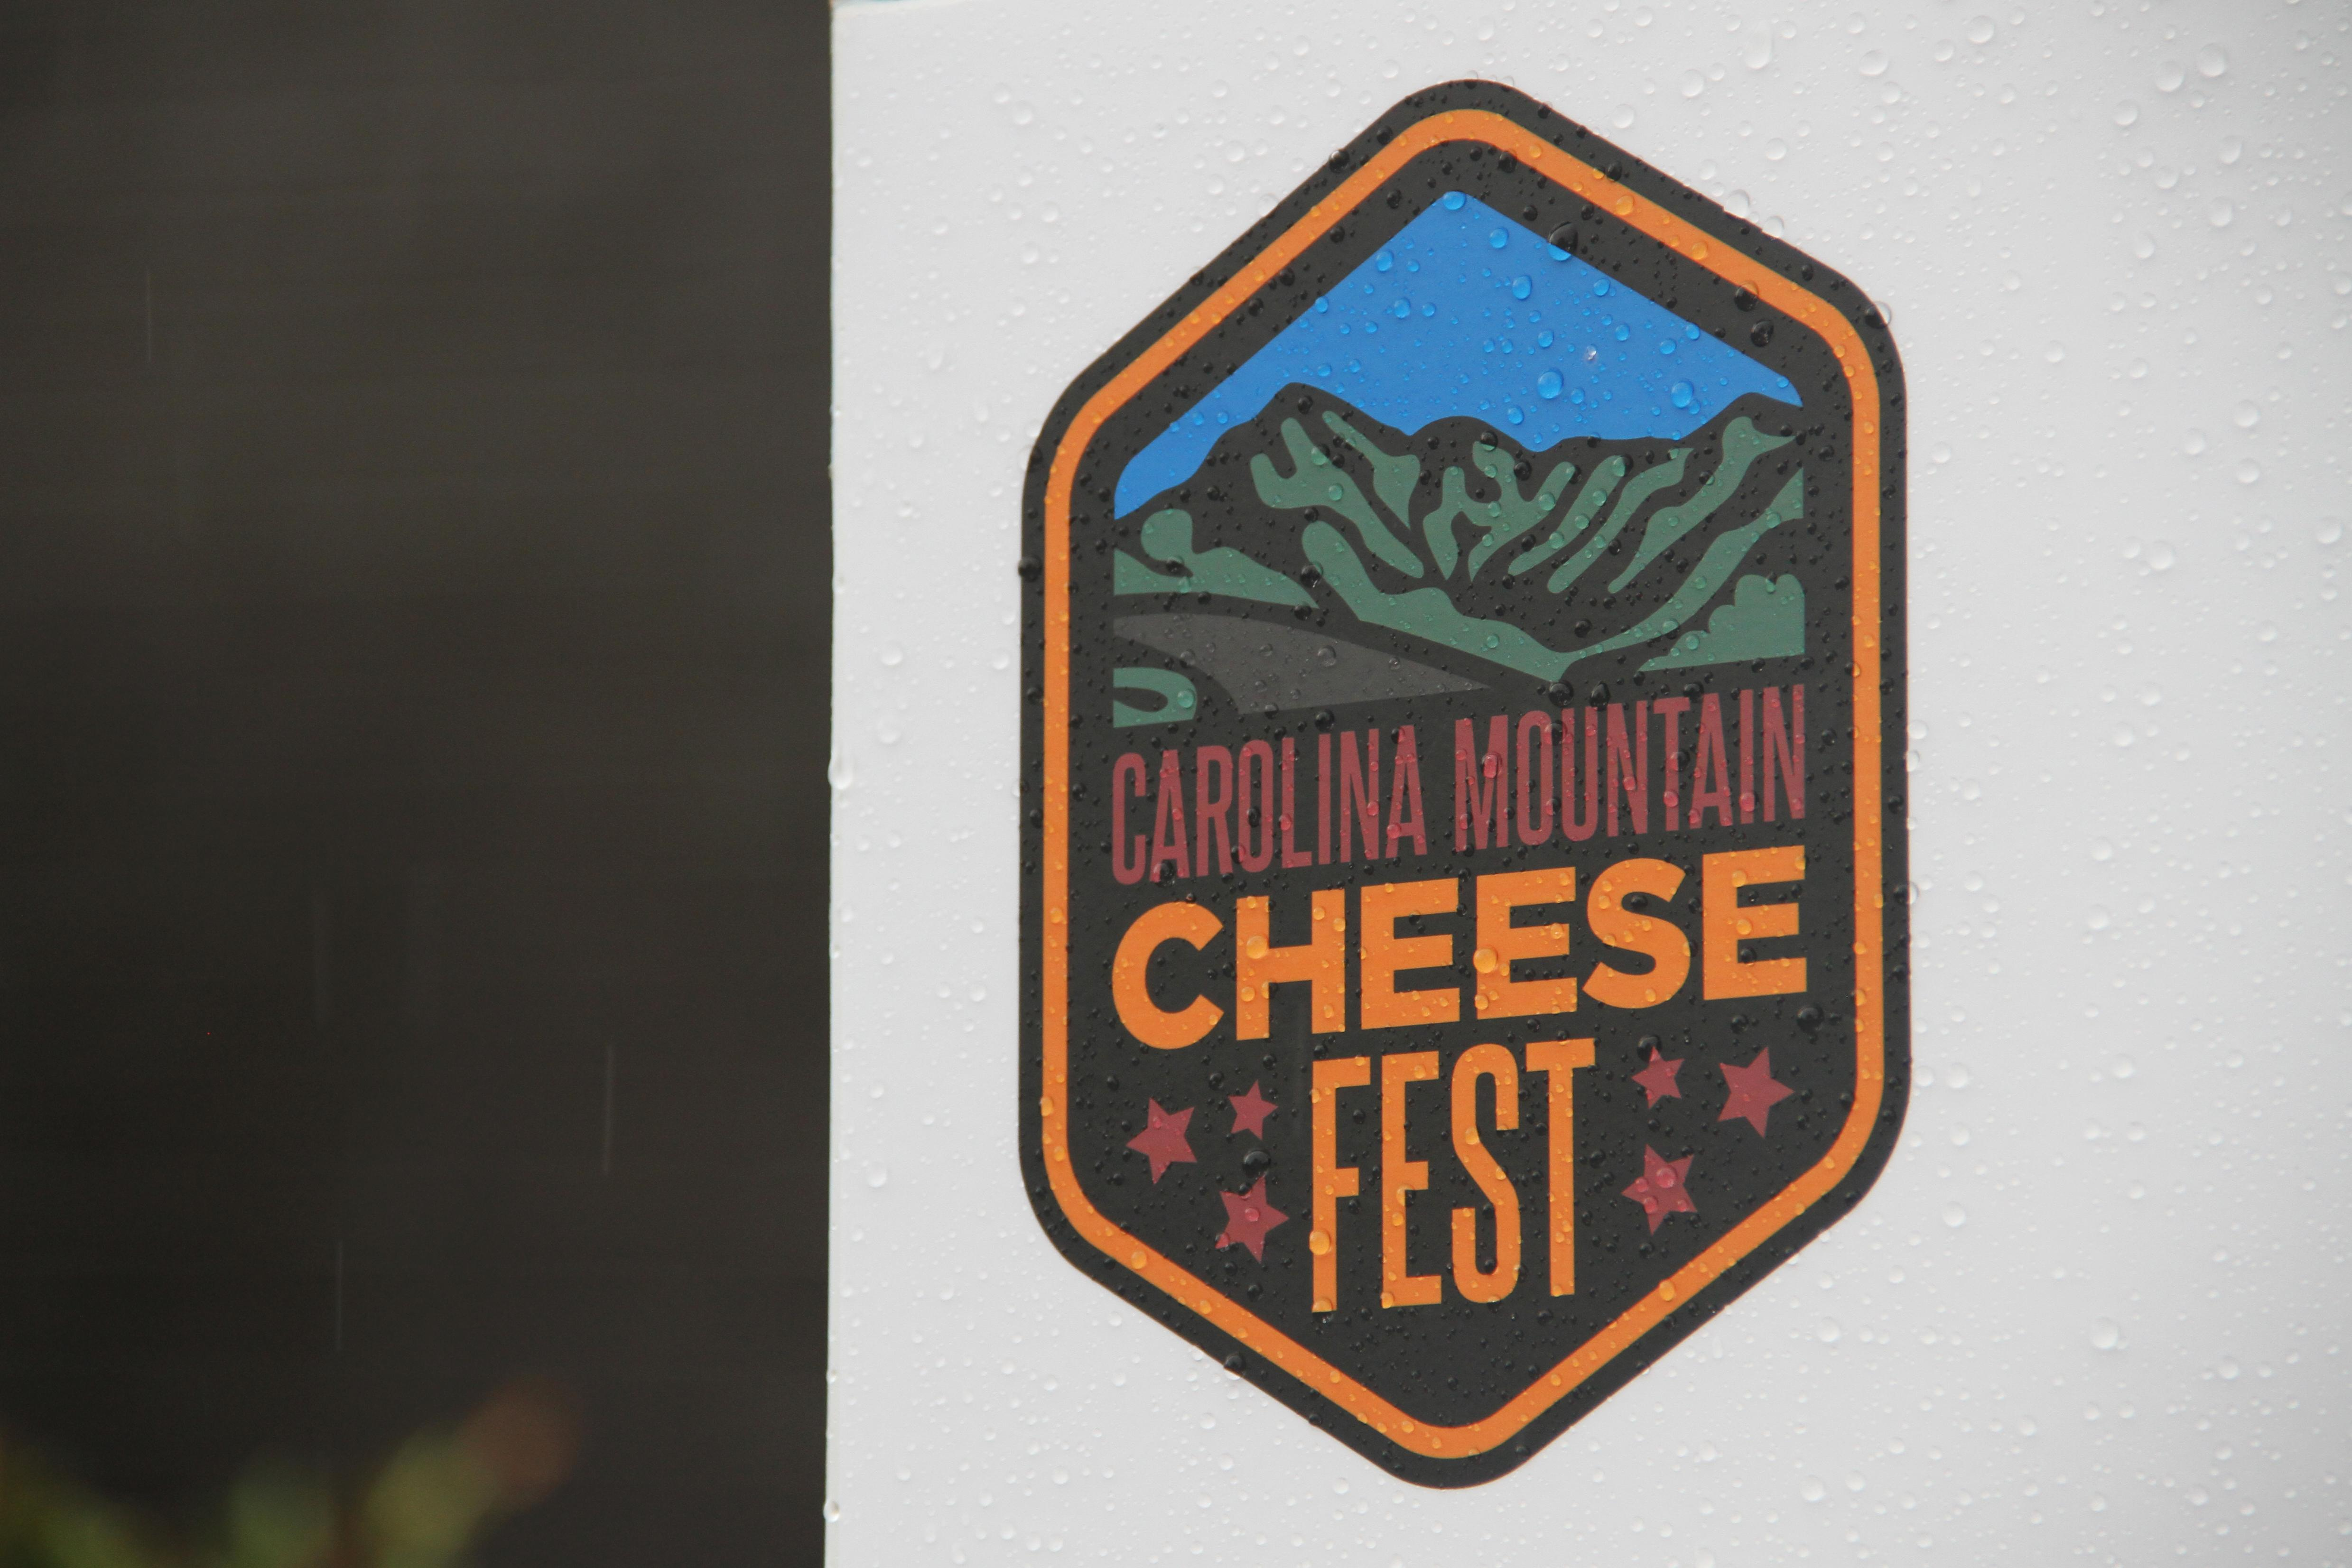 The Carolina Mountain Cheese Fest took place at Highland Brewing on Sunday, April 23, featuring local artisan cheese makers.  There were workshops and demonstrations, along with ideas for pairing cheese with other foods.  (Photo credit: WLOS Staff)